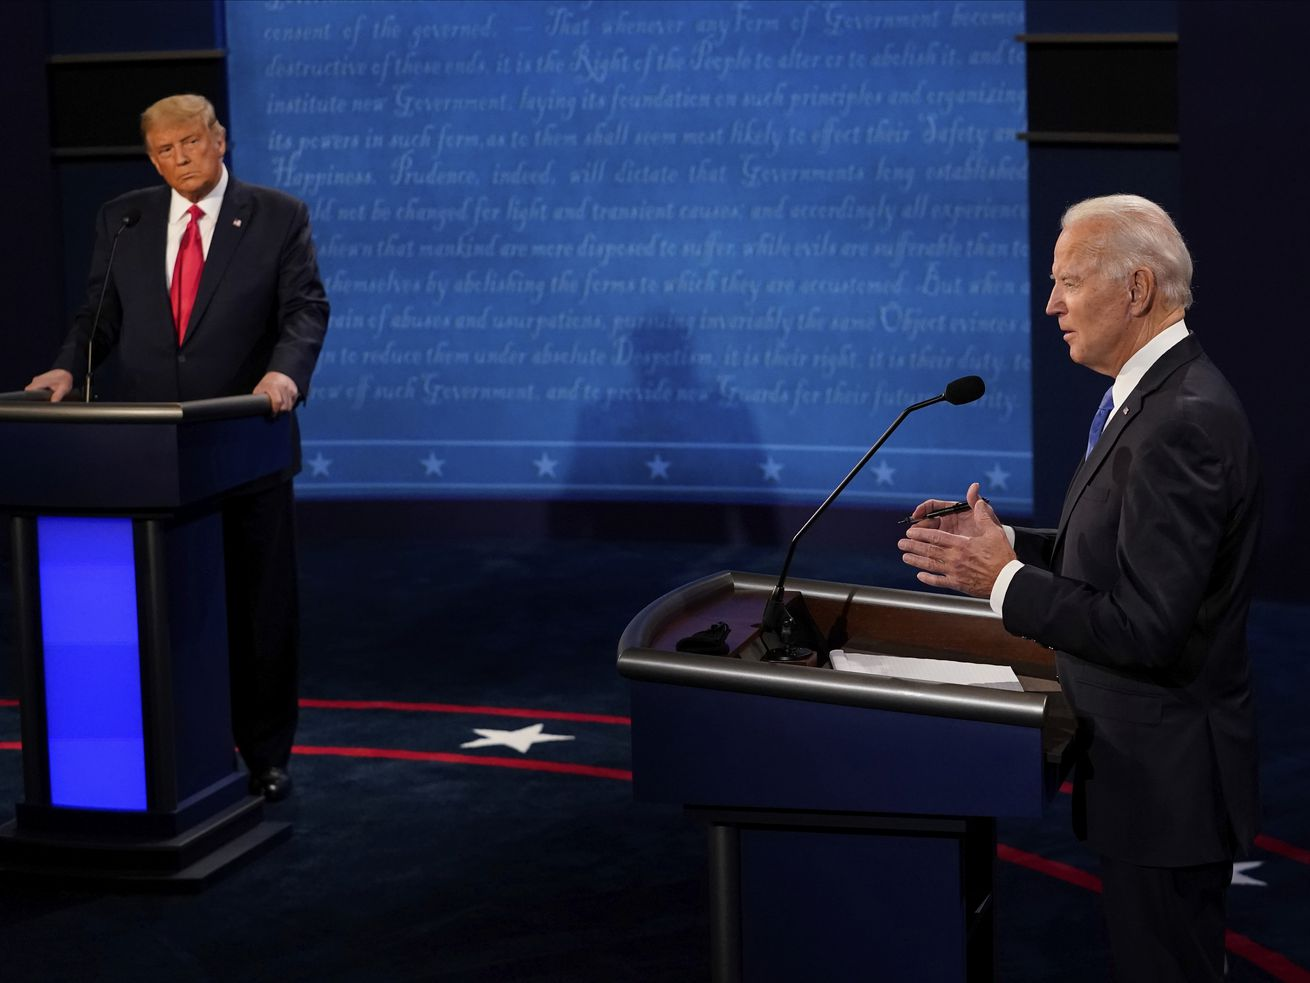 Trump and Biden stepped it up, but where is their vision for the country?